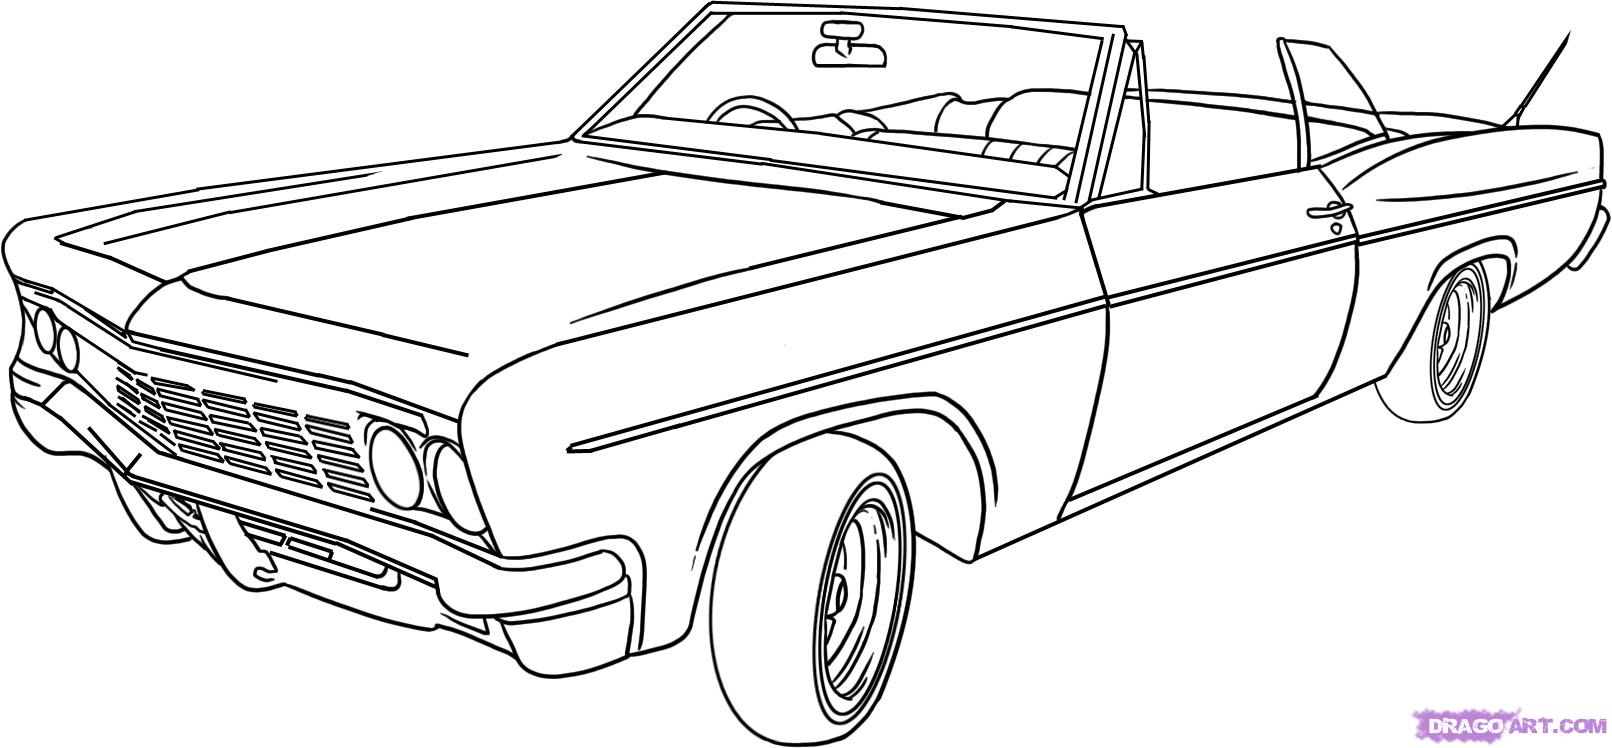 1612x748 Co2 Car Coloring Drawing How To Draw A Lowrider Step By Cars